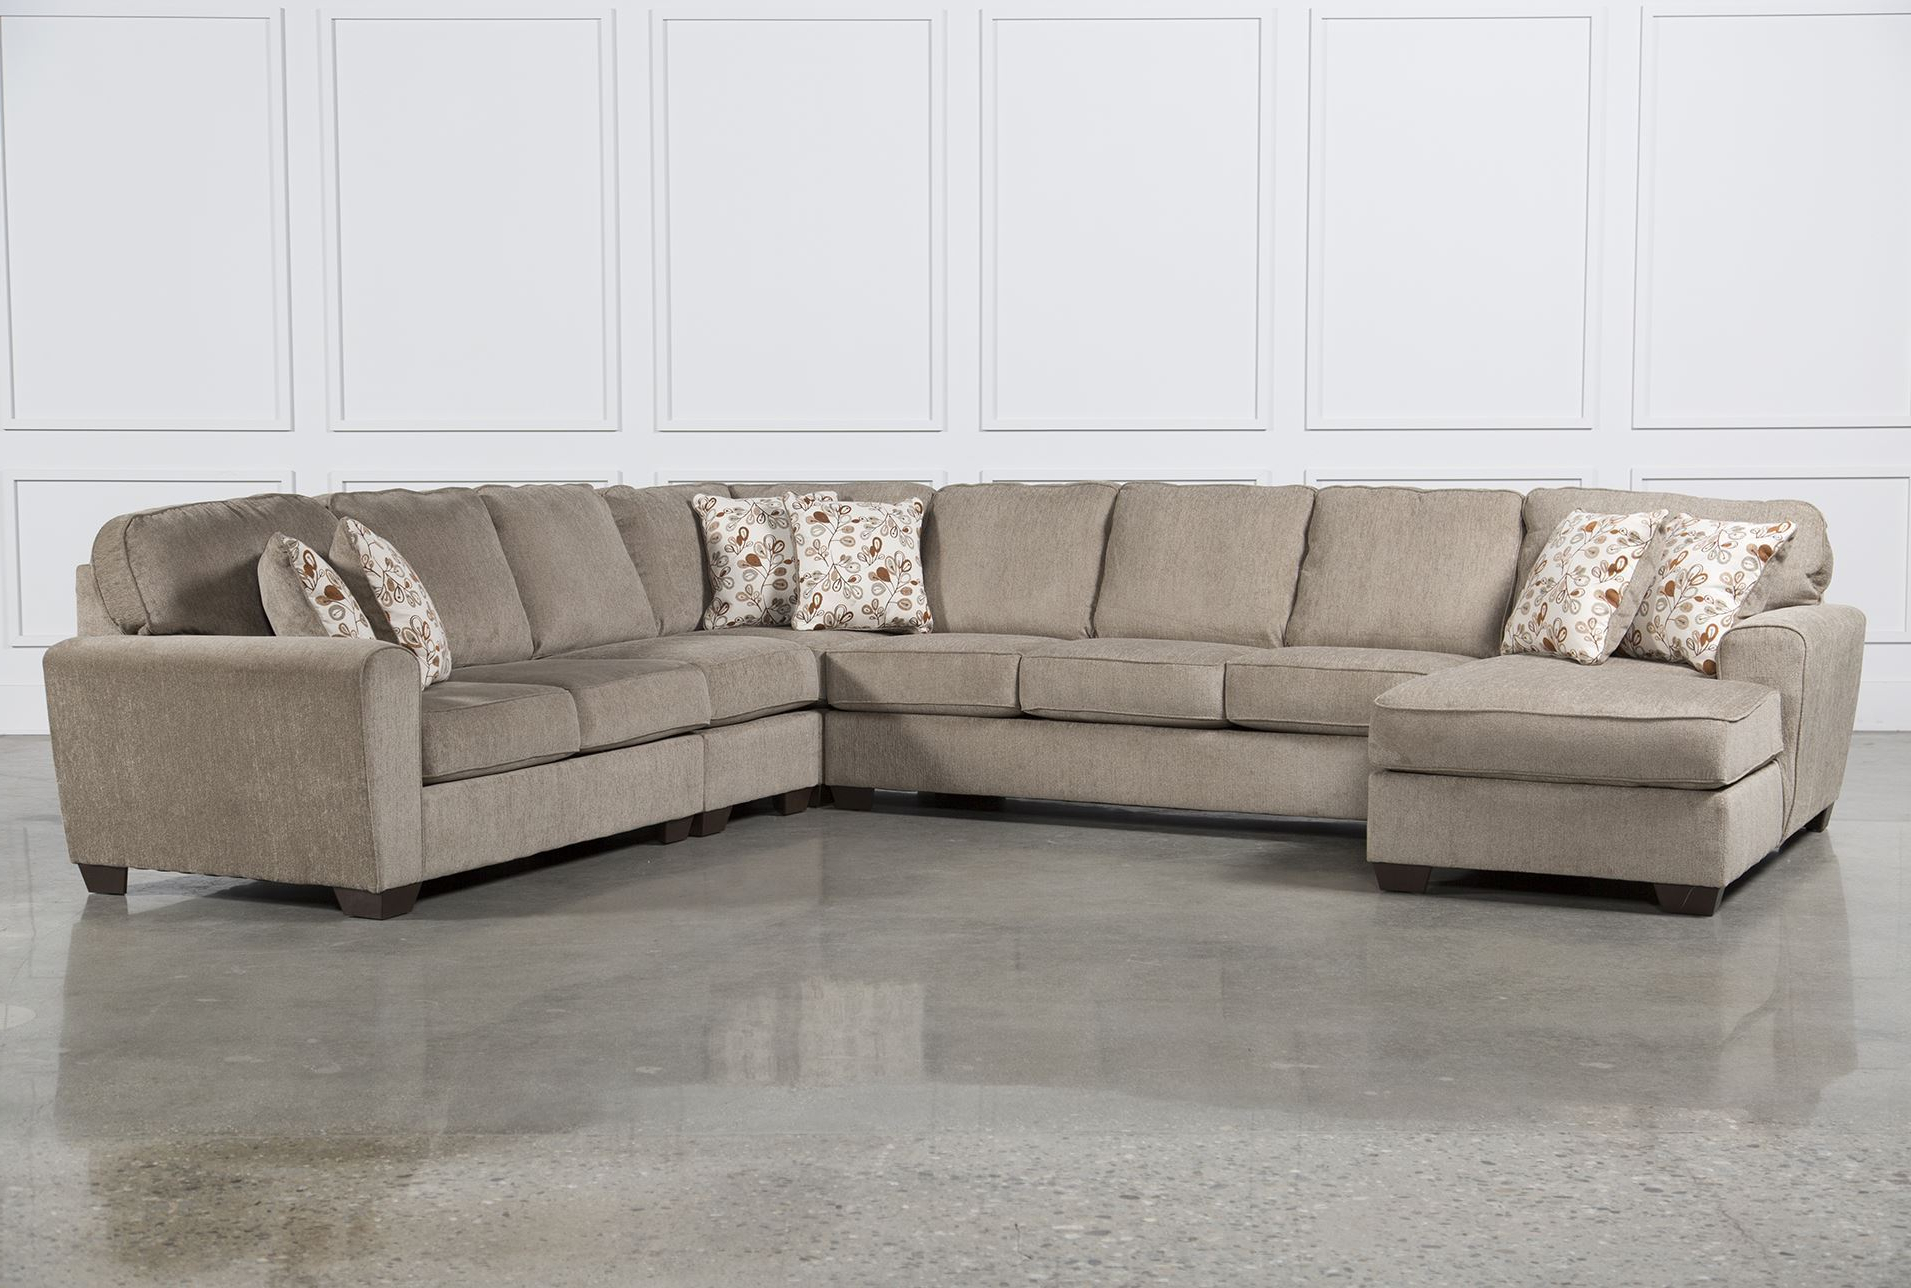 Kerri 2 Piece Sectionals With Laf Chaise Intended For Latest Ideas Of Laf Chaise On Kerri 2 Piece Sectional W Laf Chaise Living (View 10 of 20)